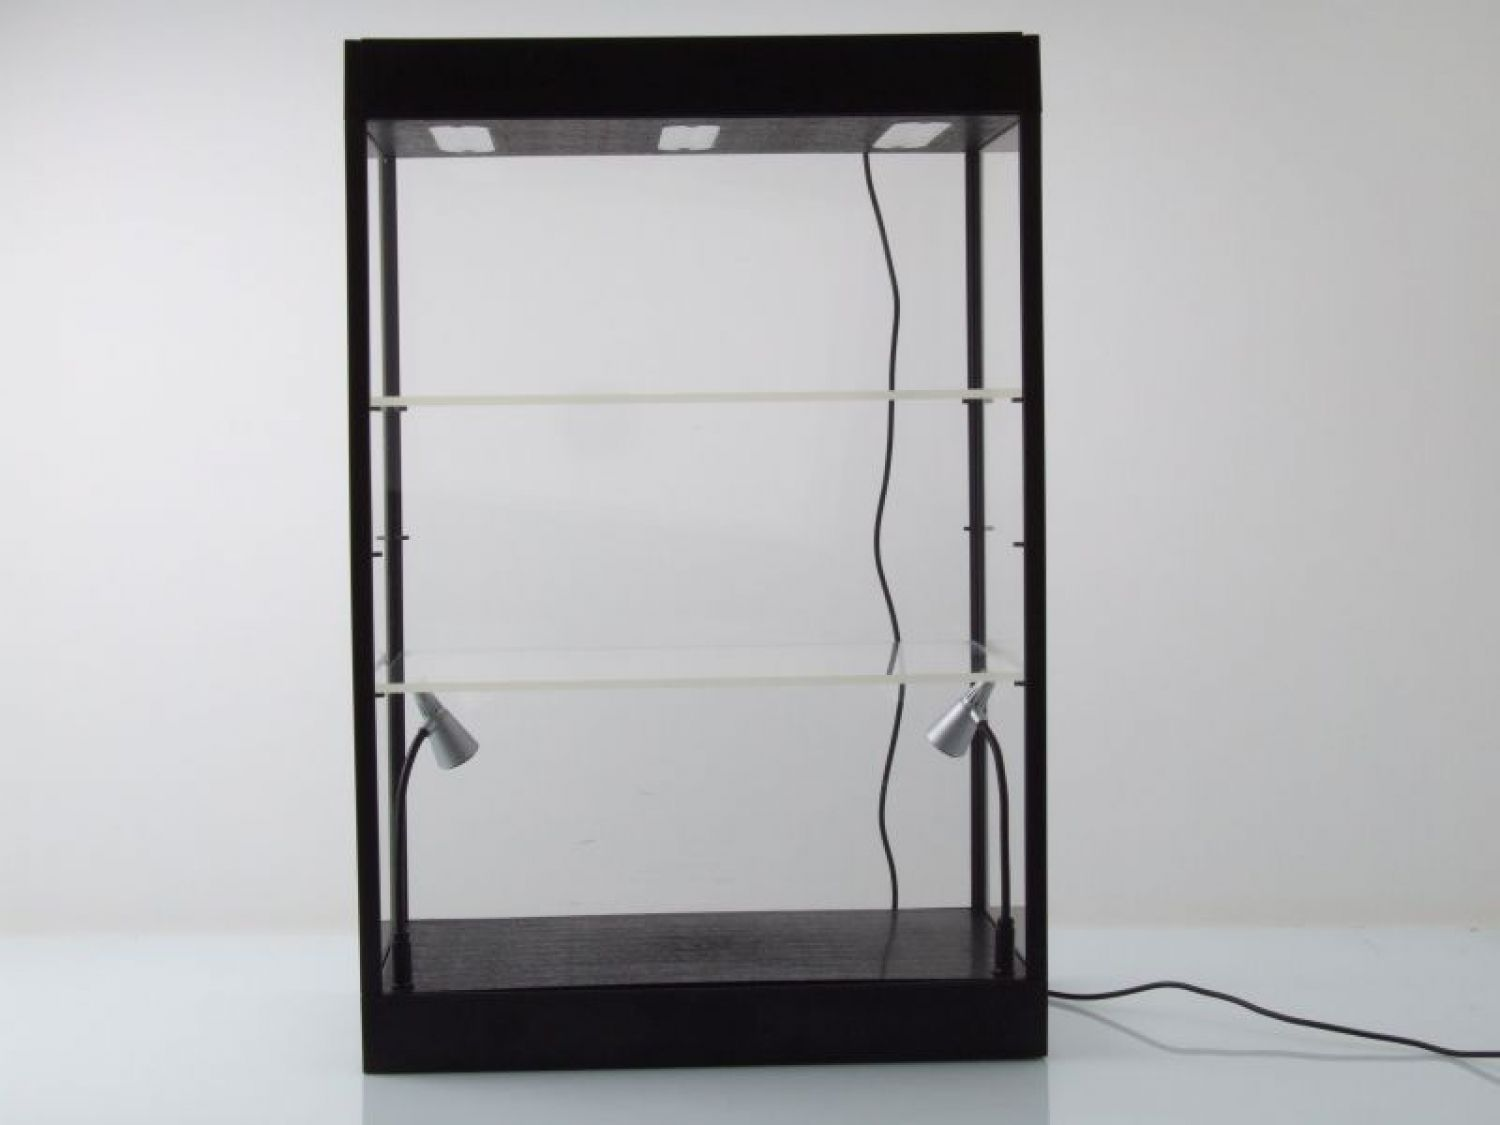 vitrine mit led beleuchtung schwarz f r modellautos 5 led. Black Bedroom Furniture Sets. Home Design Ideas